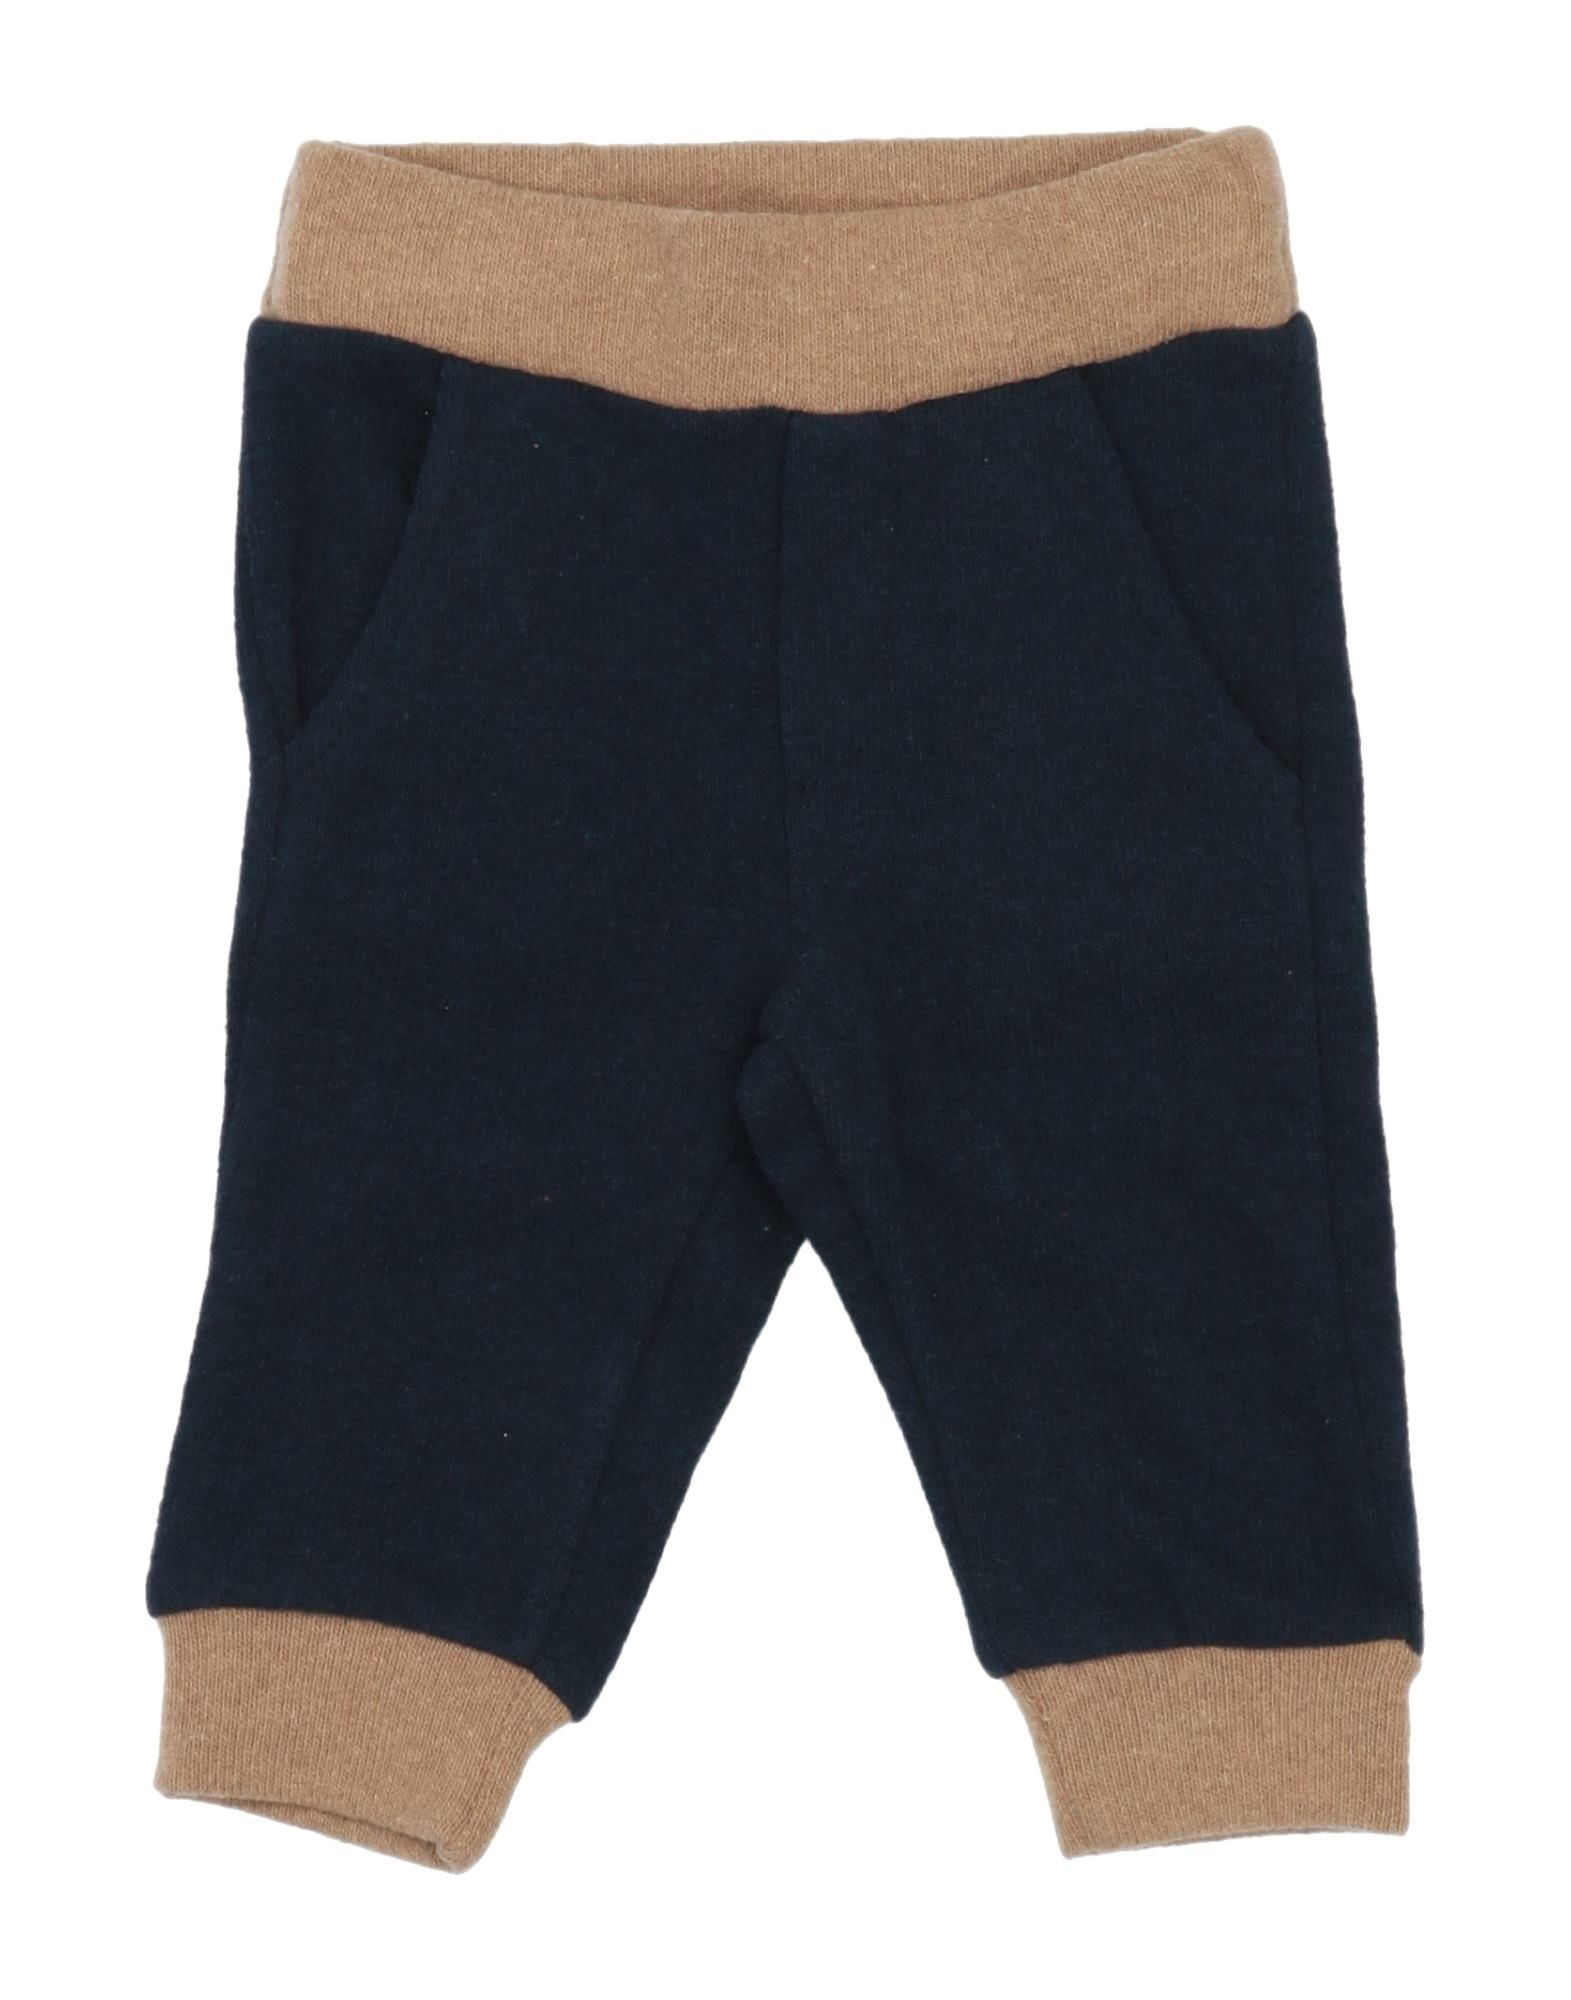 Le Petit Coco Kids' Casual Pants In Black